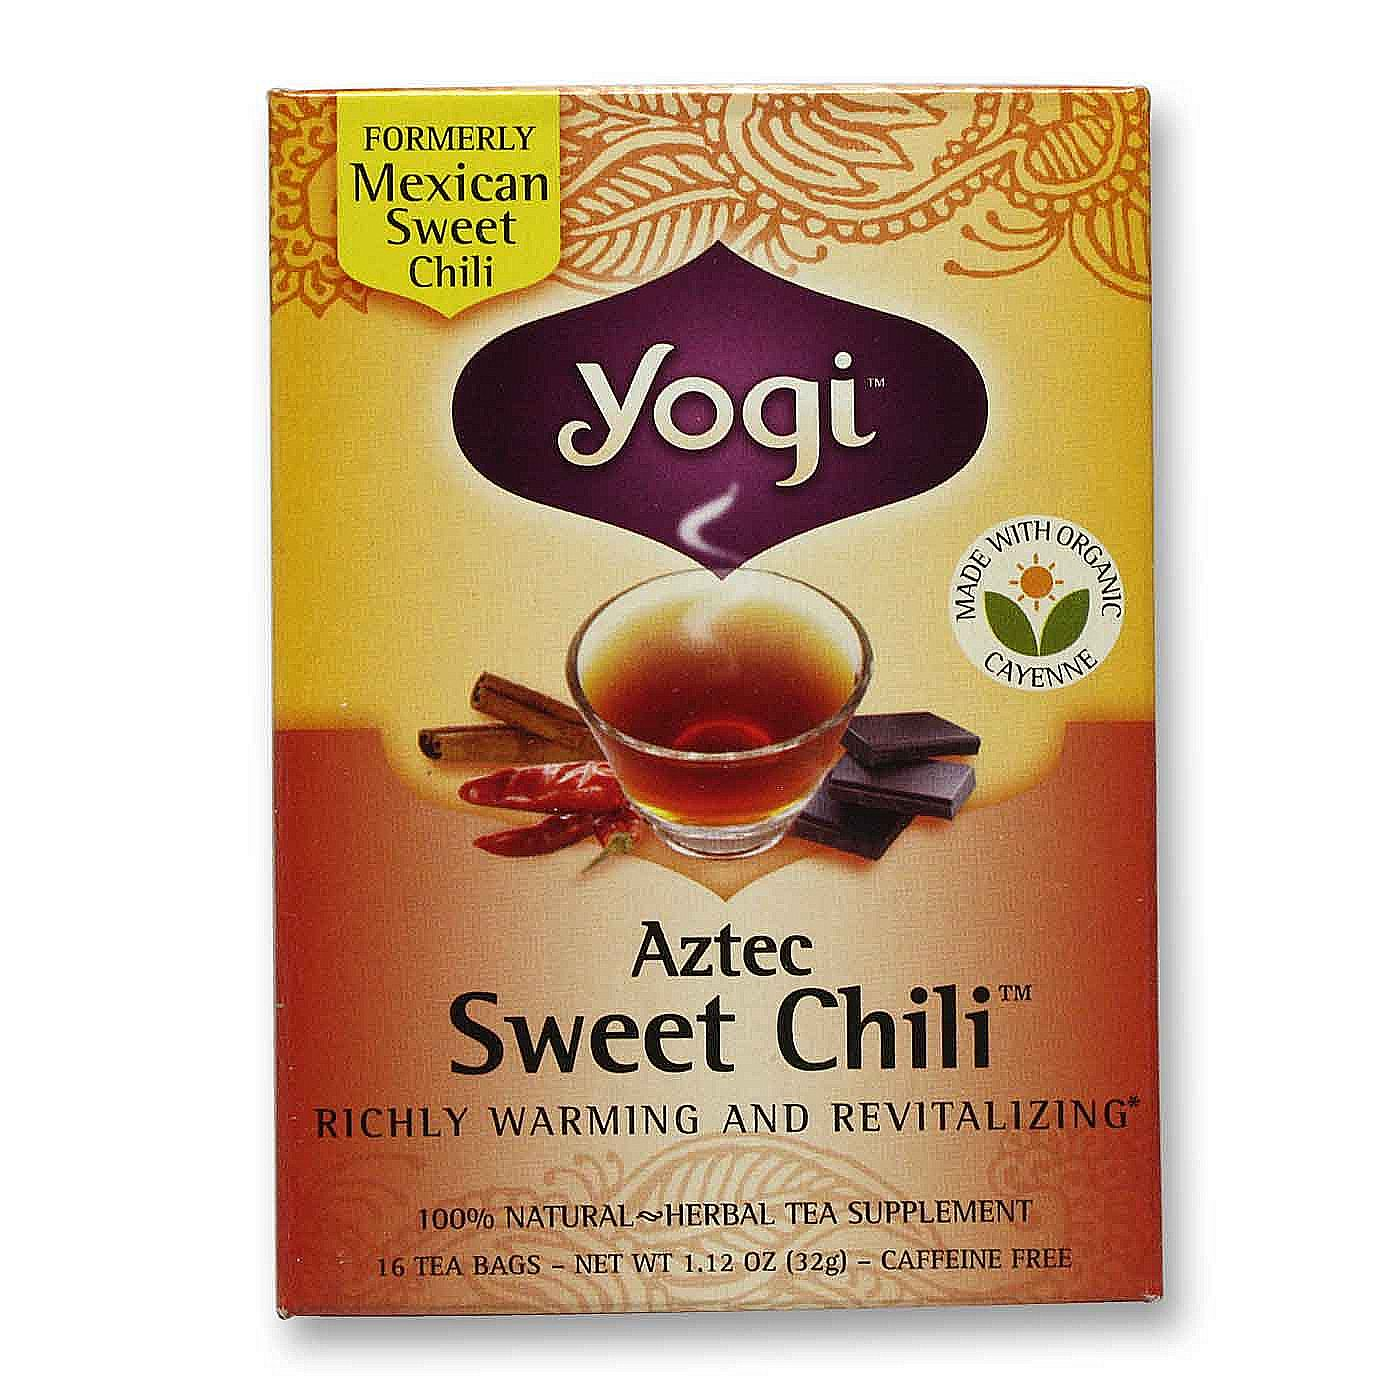 Yogi Tea Organic Teas Aztec Sweet Chili Tea 16 Bags